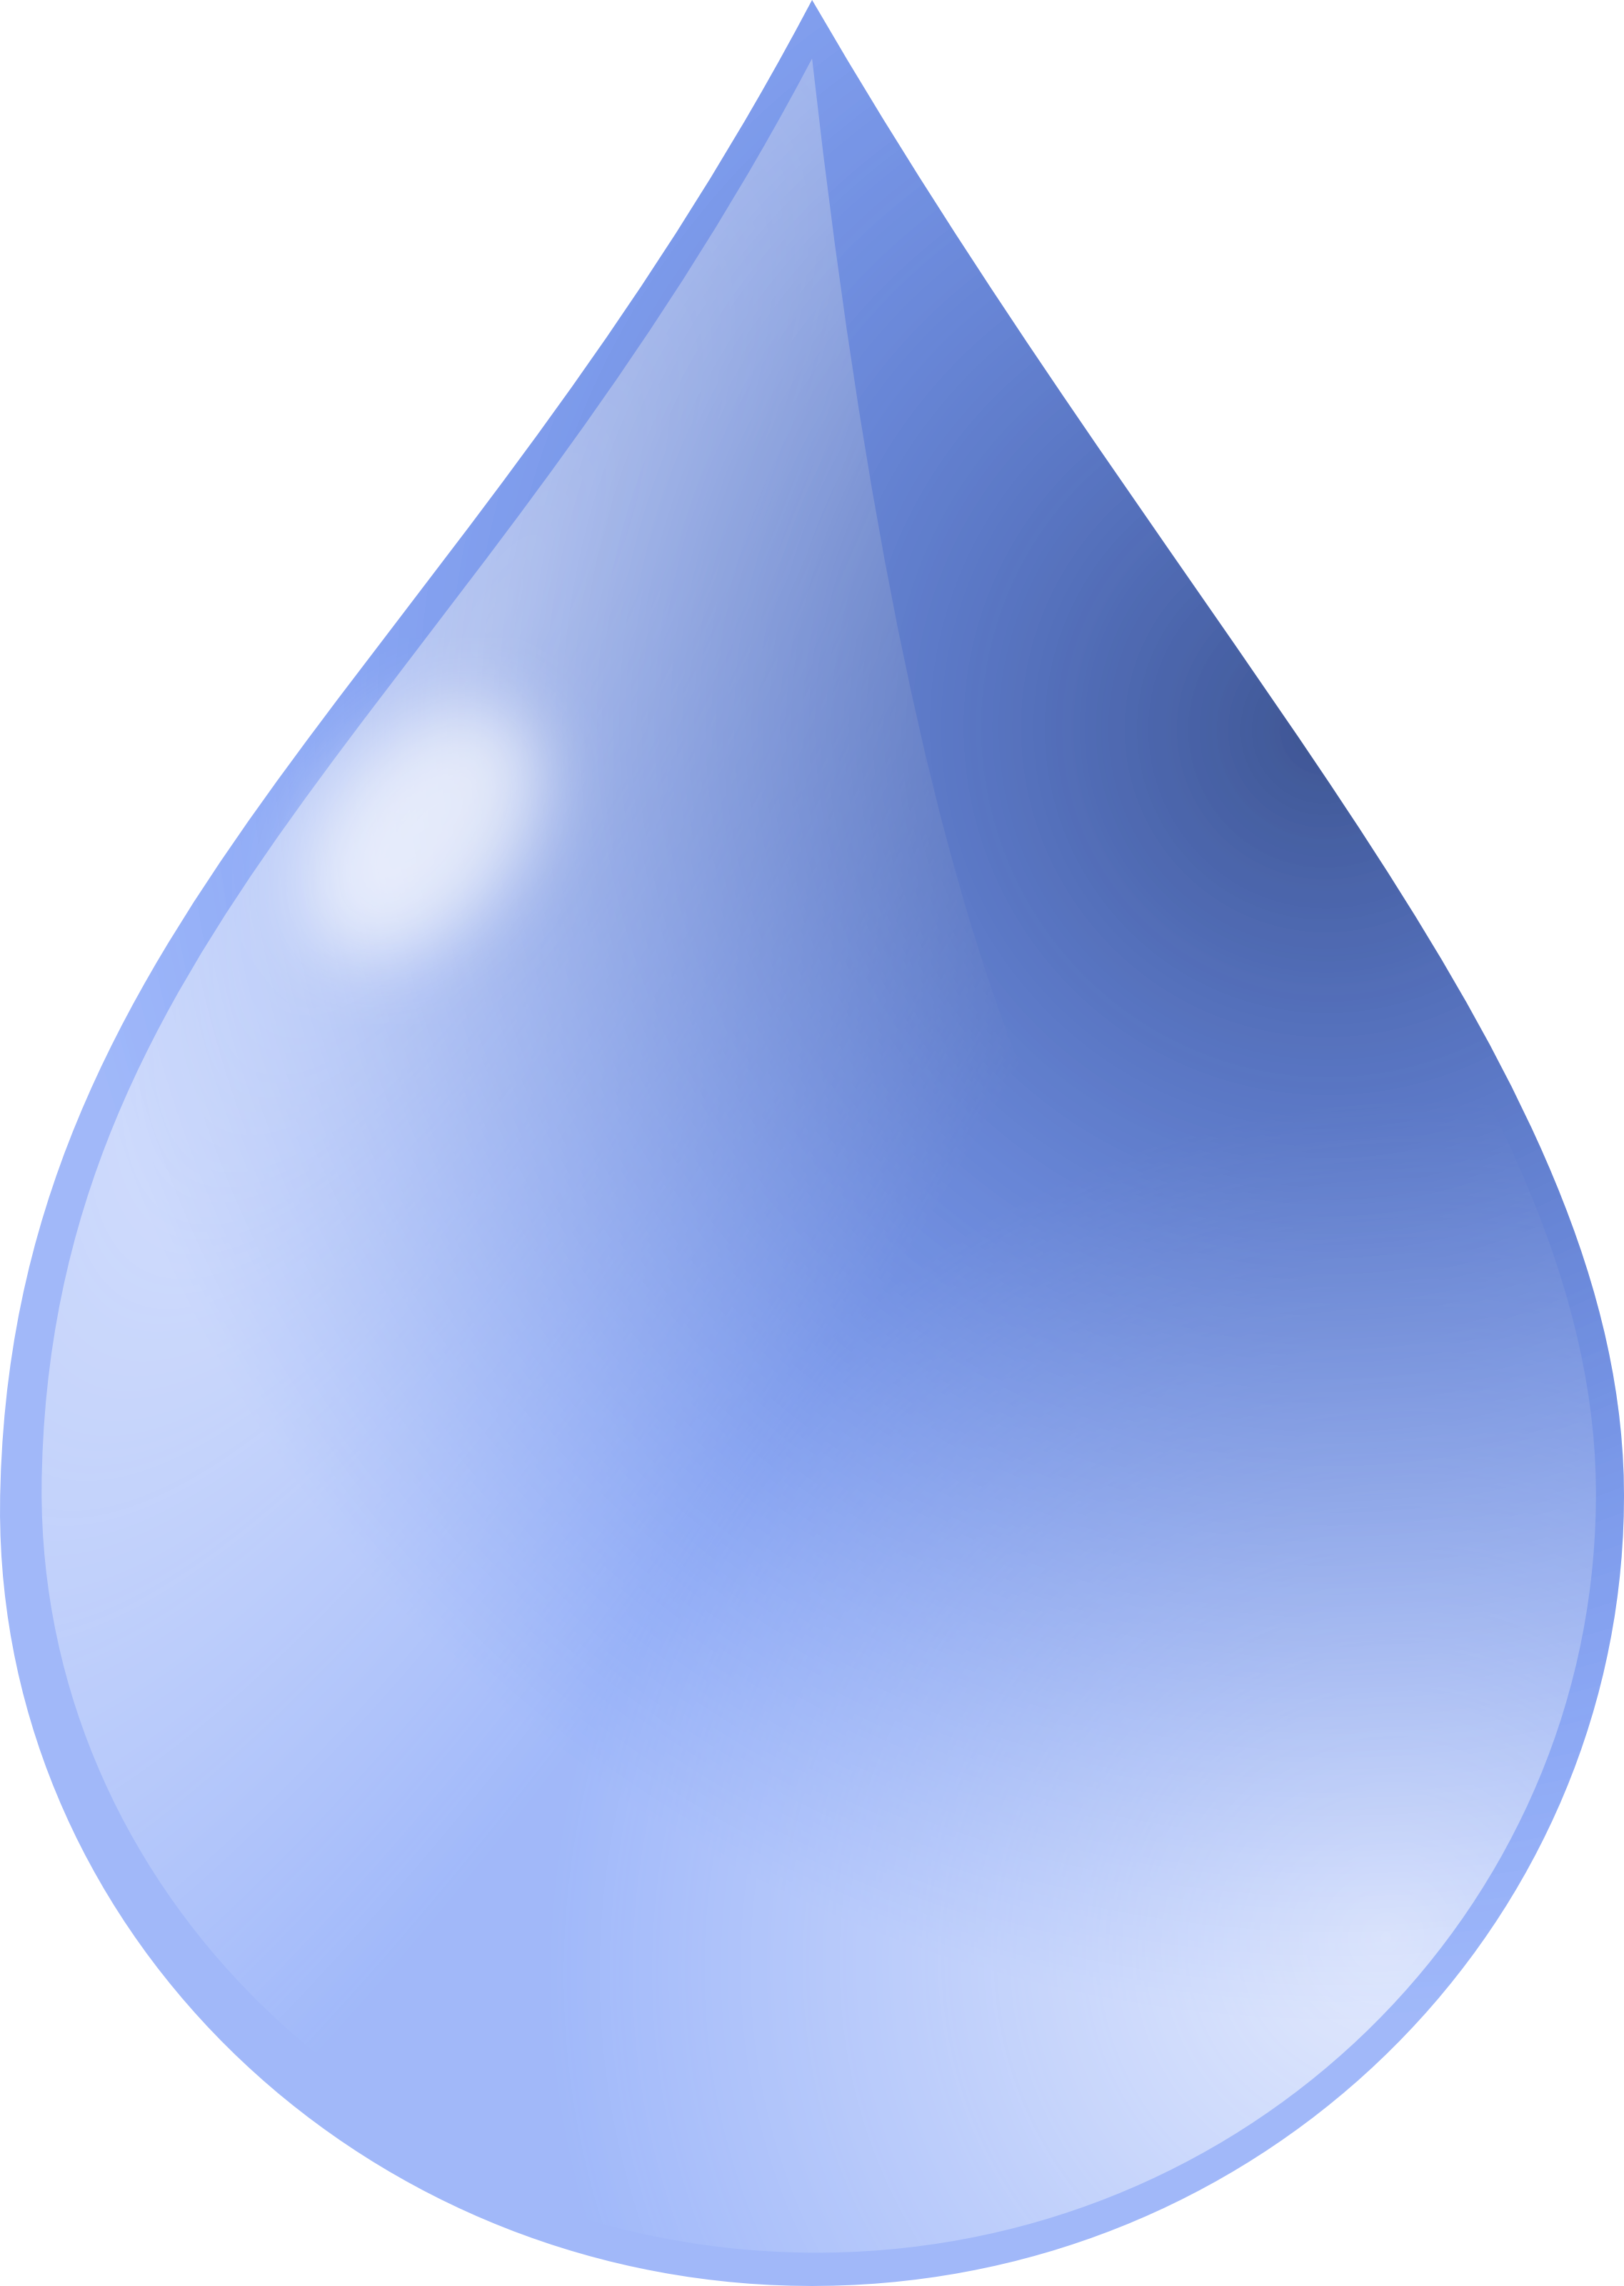 Water Droplet PNG HD - 121199